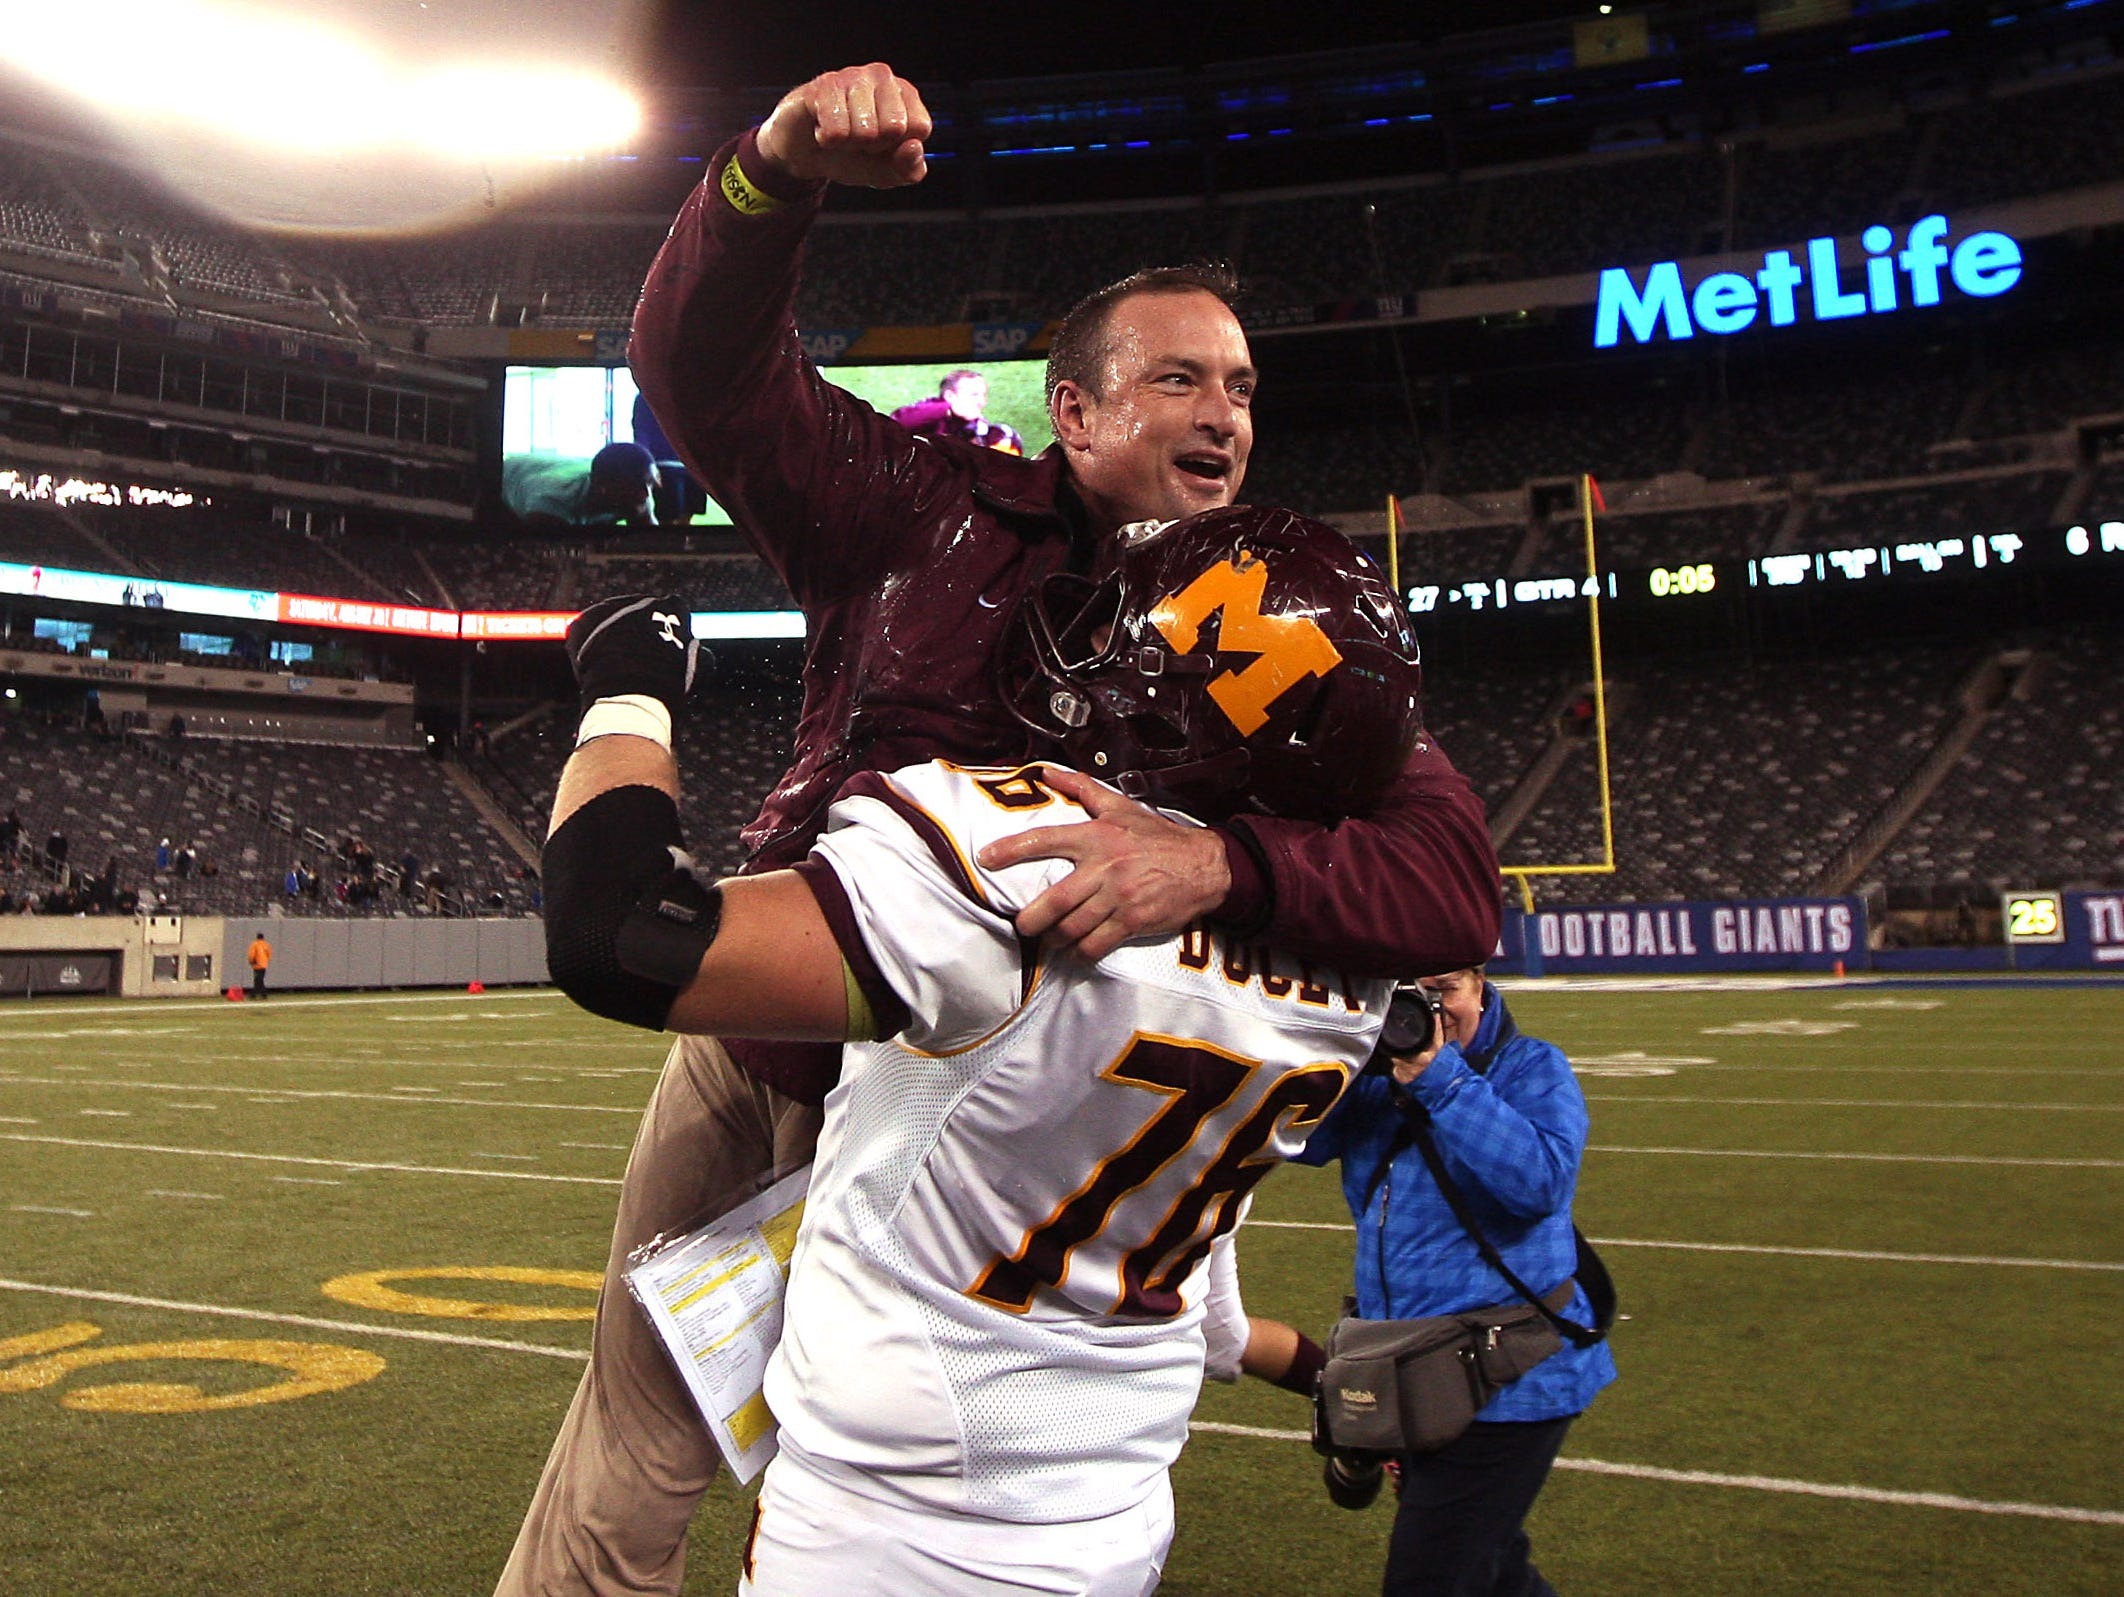 Madison Head Coach Chris Kubik is lifted up by Jake Ducey after the Dodgers beat Rutherford in the North 2, Group 2 NJSIAA football Championship at MetLife Stadium. Madison won 27-6. December 3, 2015, East Rutherford, NJ.